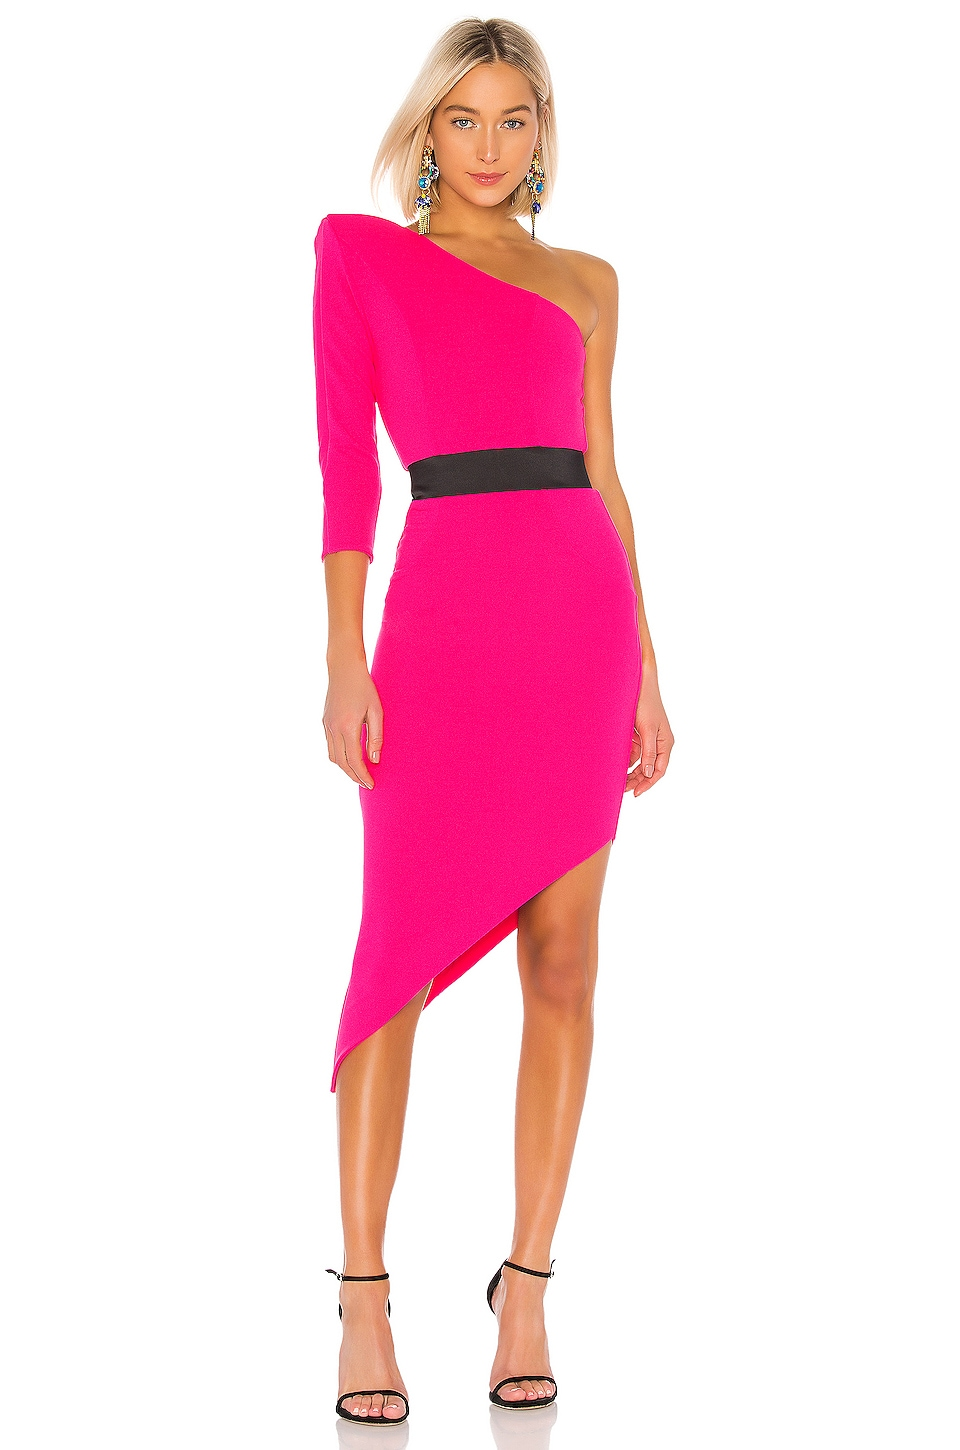 Zhivago Helix Dress in Electric Pink